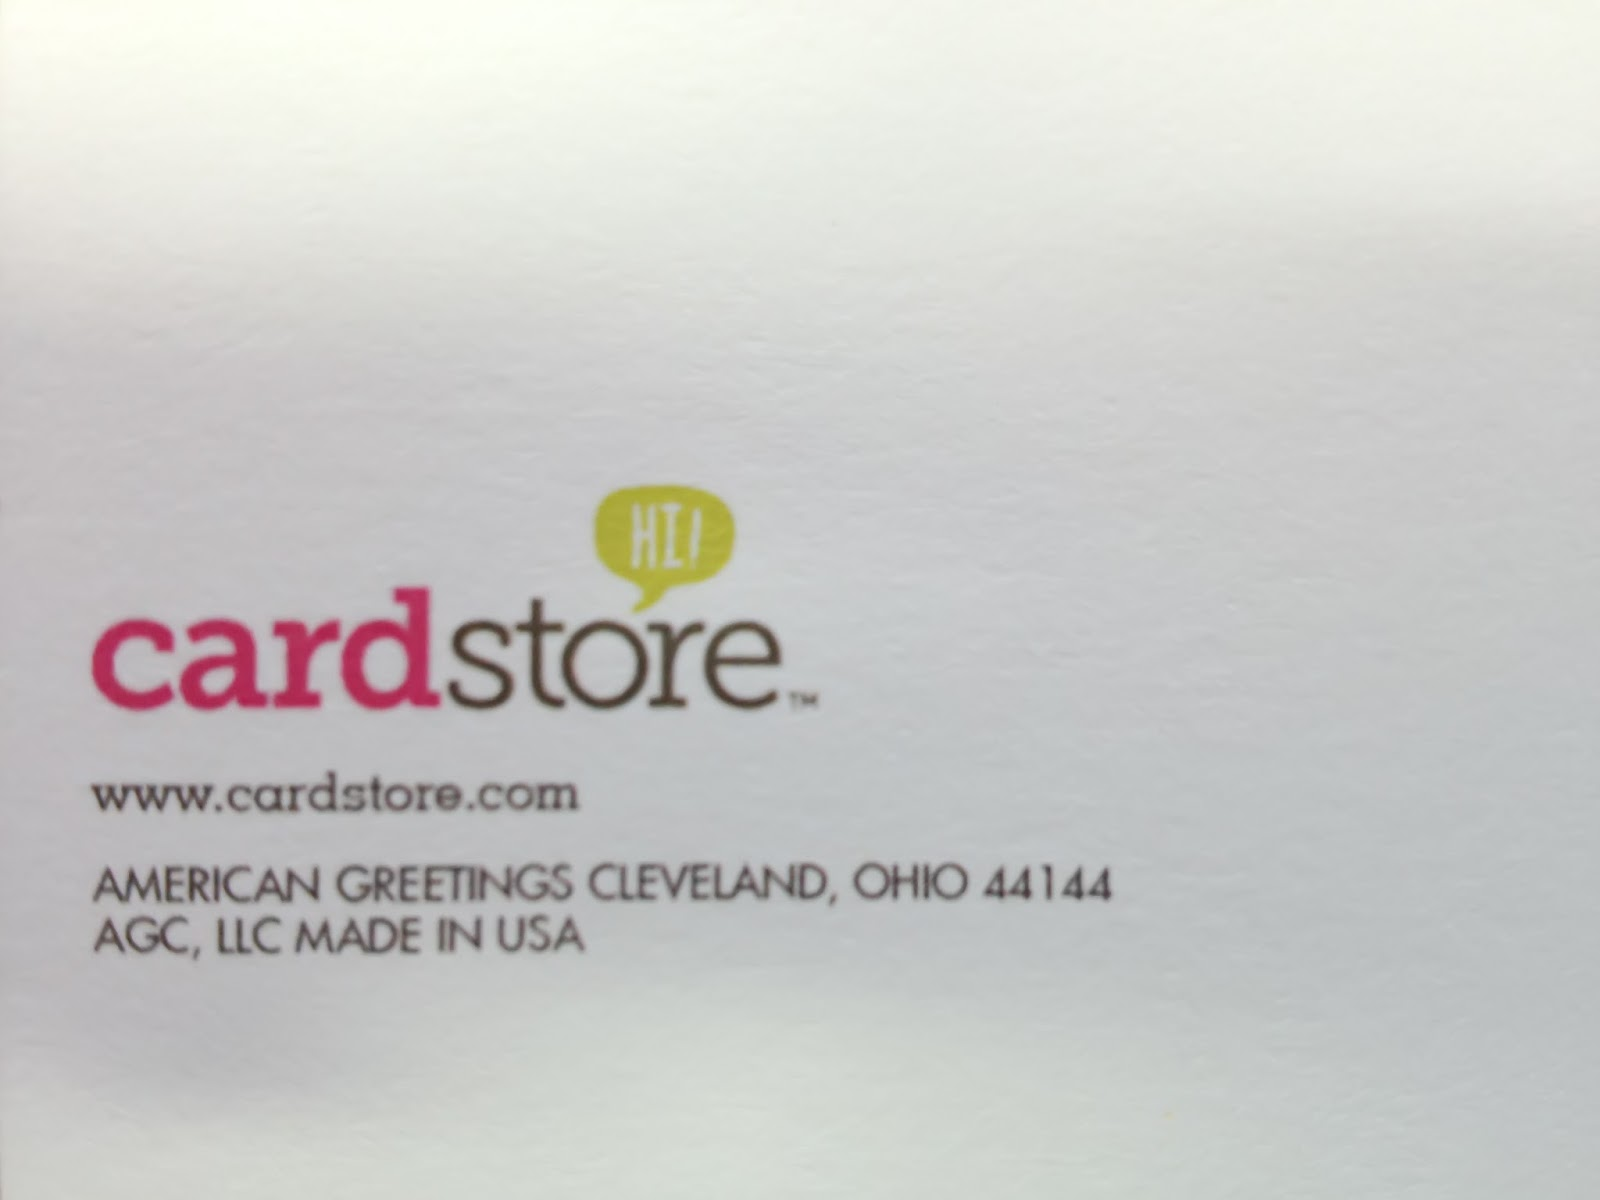 Cardstore Review